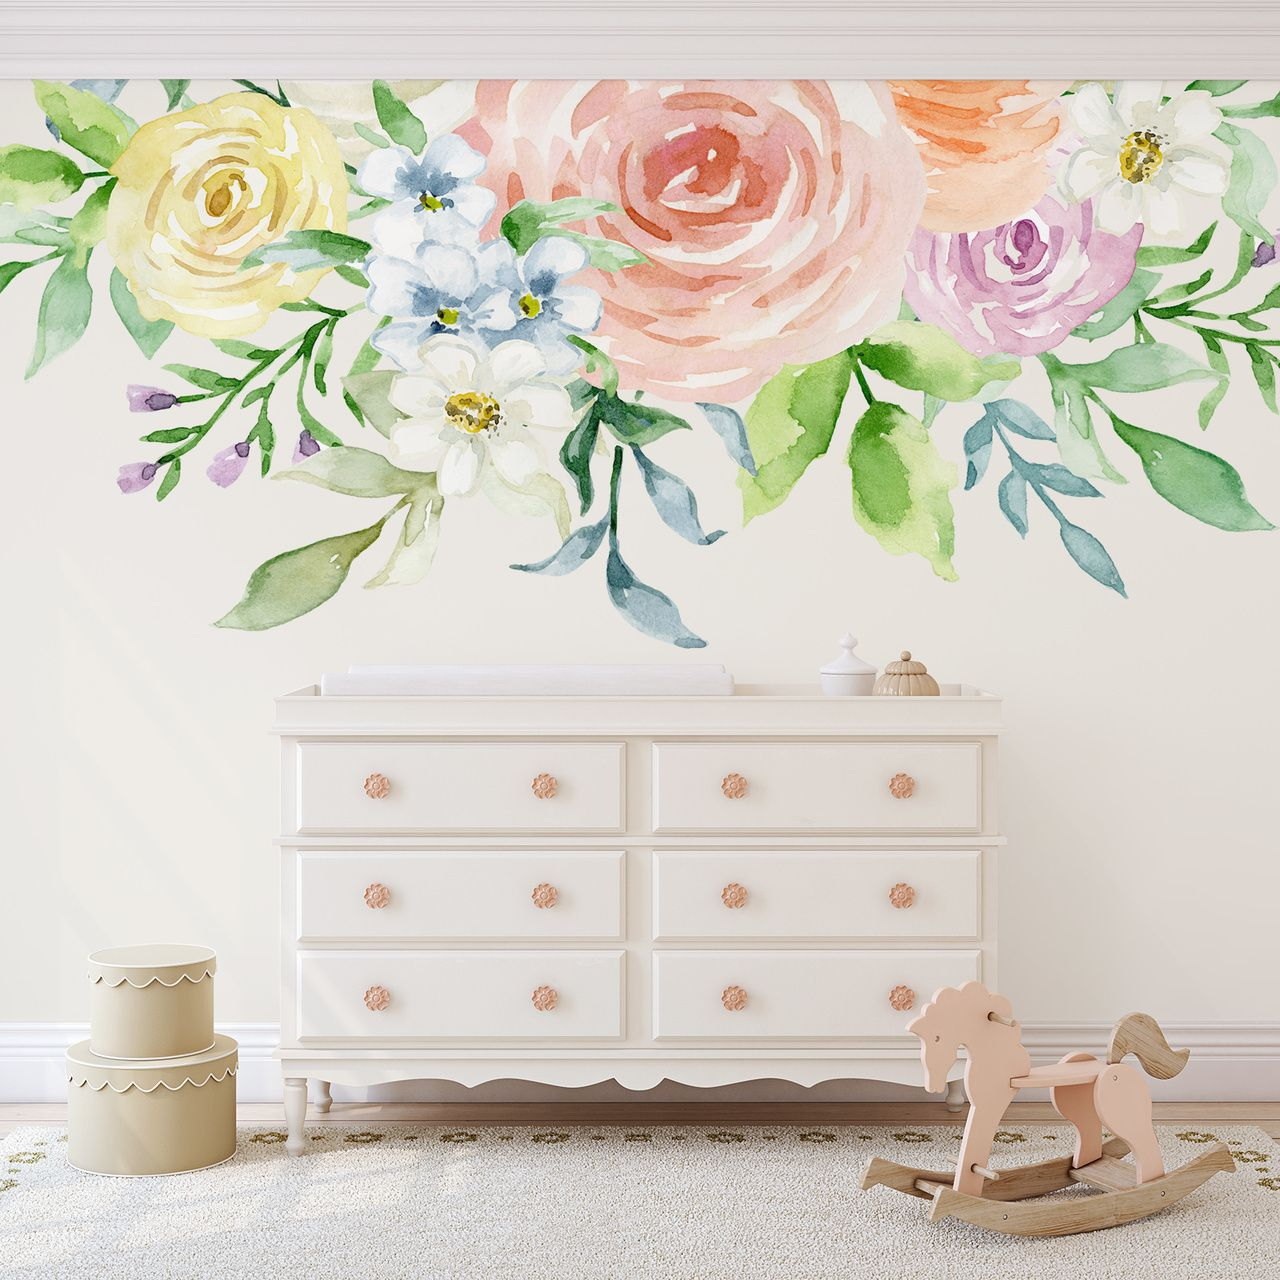 Sophia Pastel Watercolors Flowers Blooms Wall Mural Decal In 2020